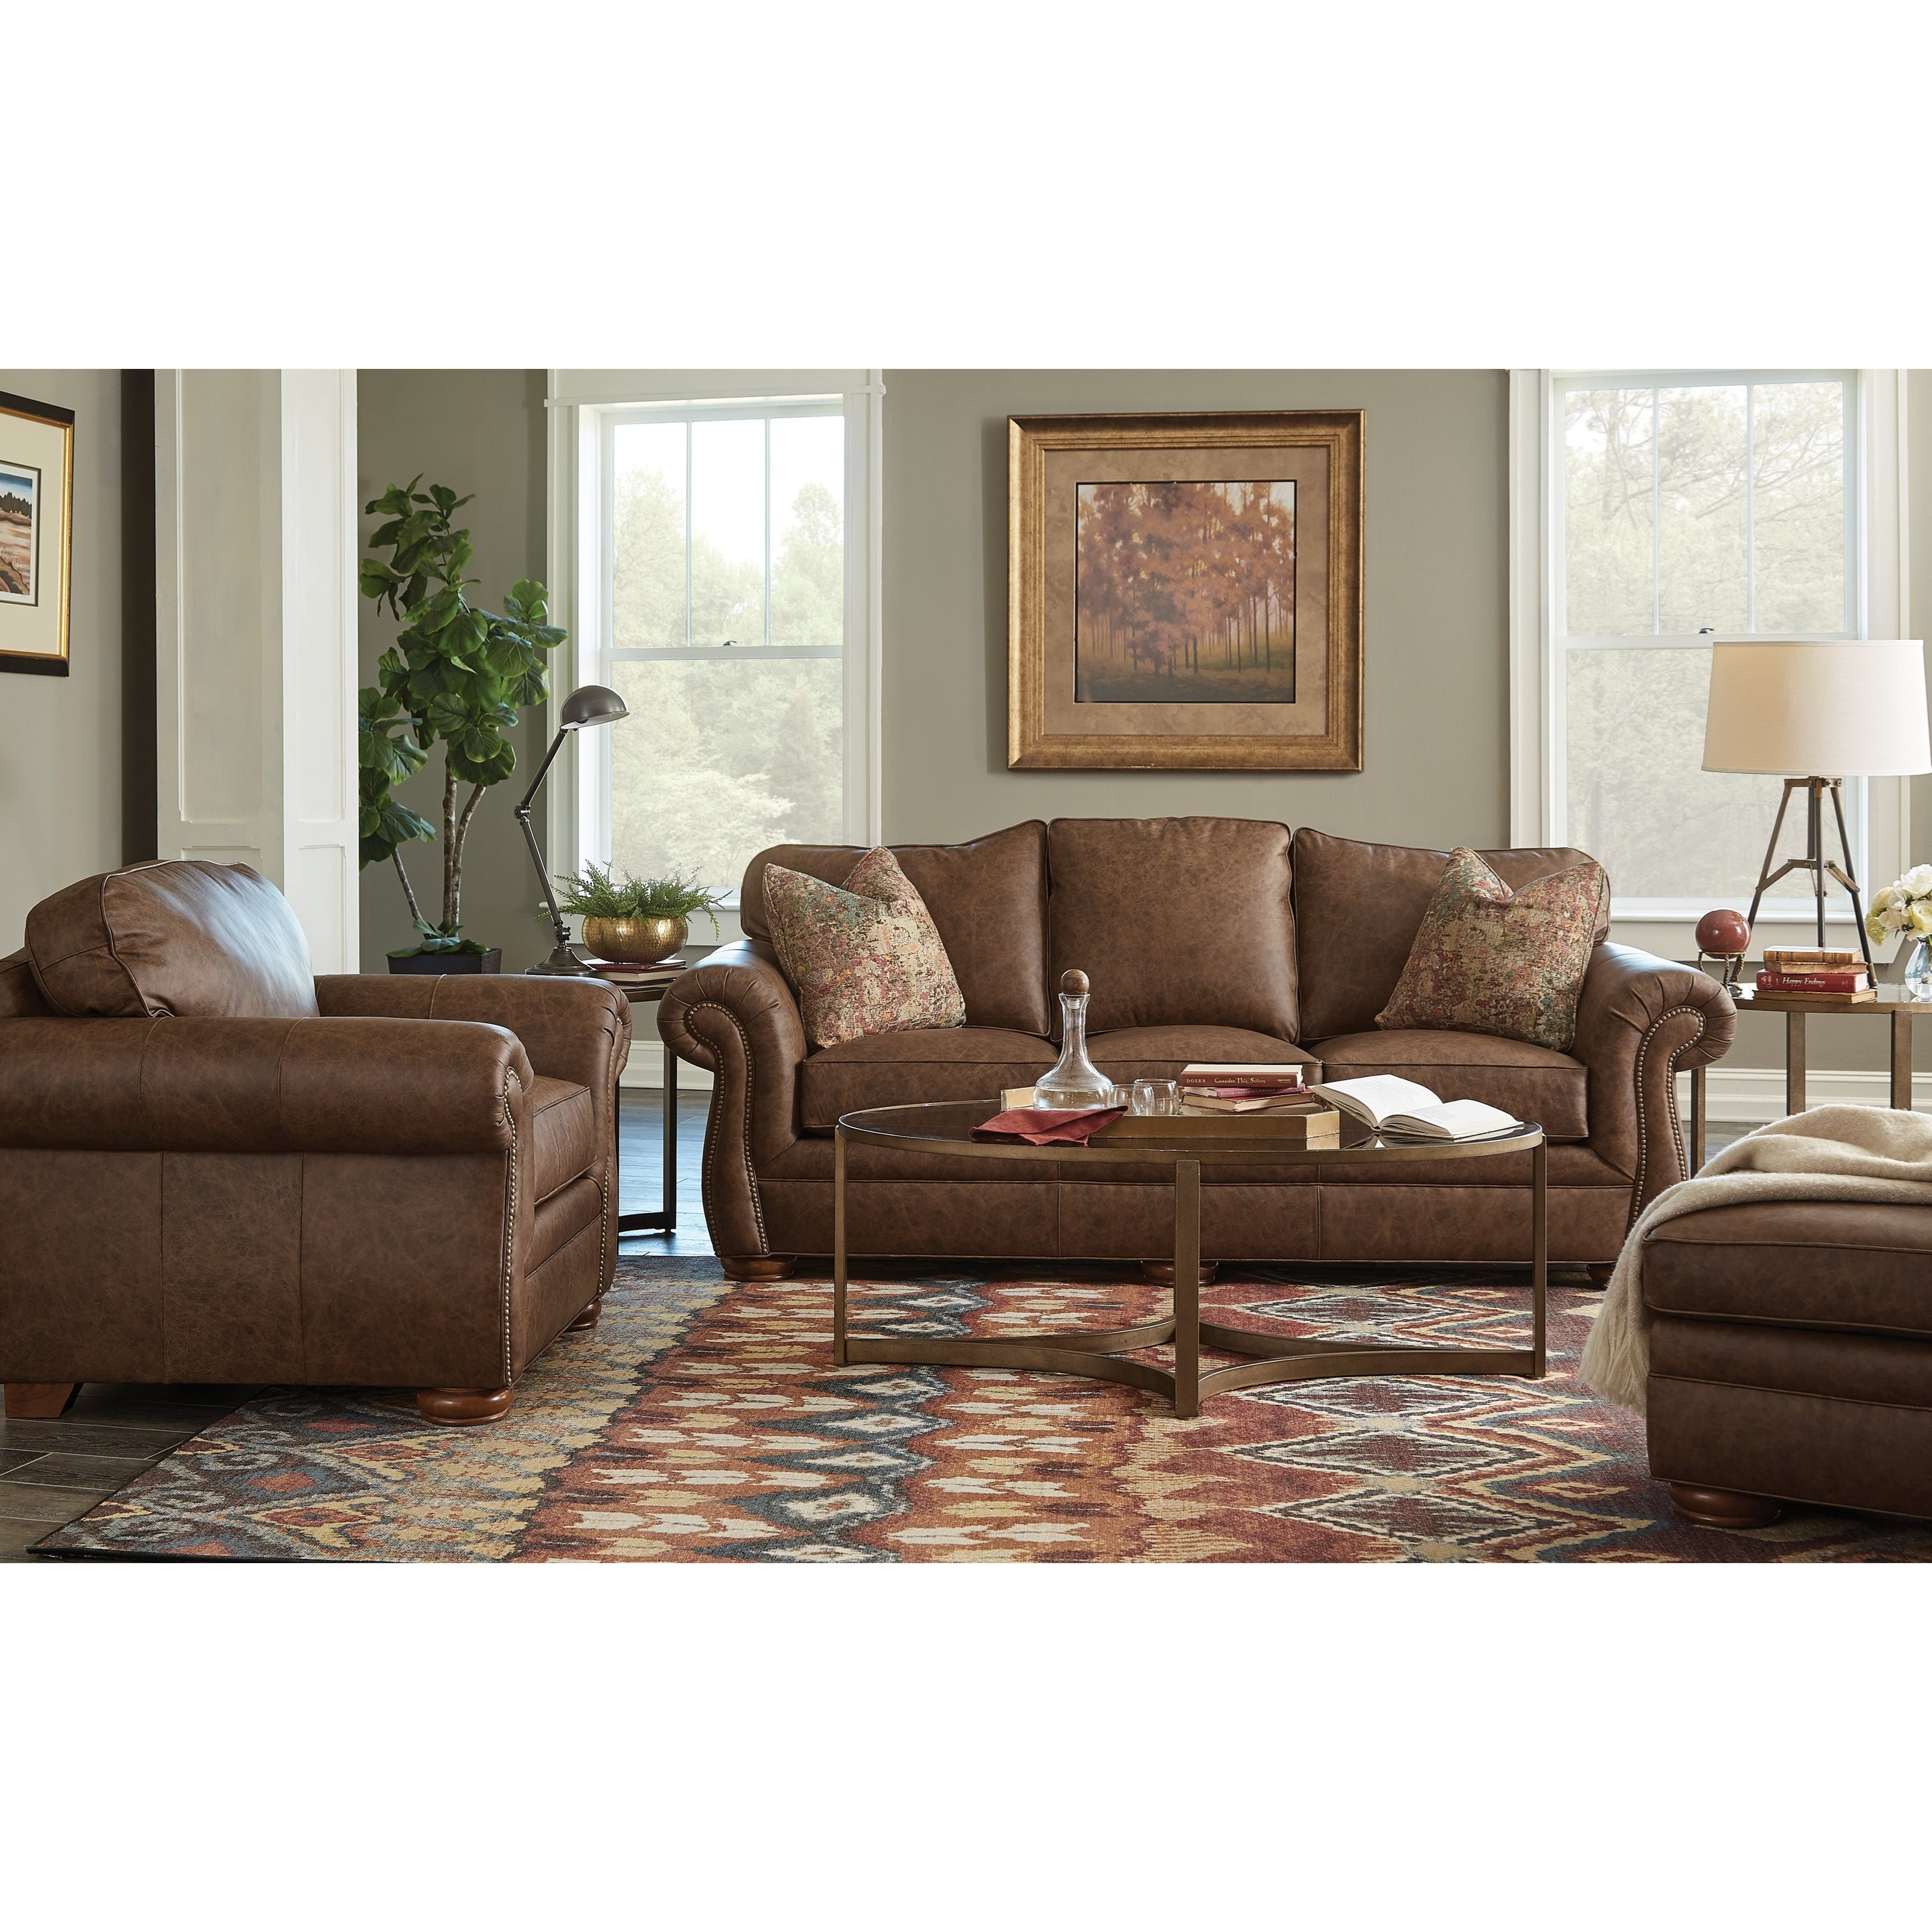 L268550 Living Room Group by Craftmaster at Baer's Furniture